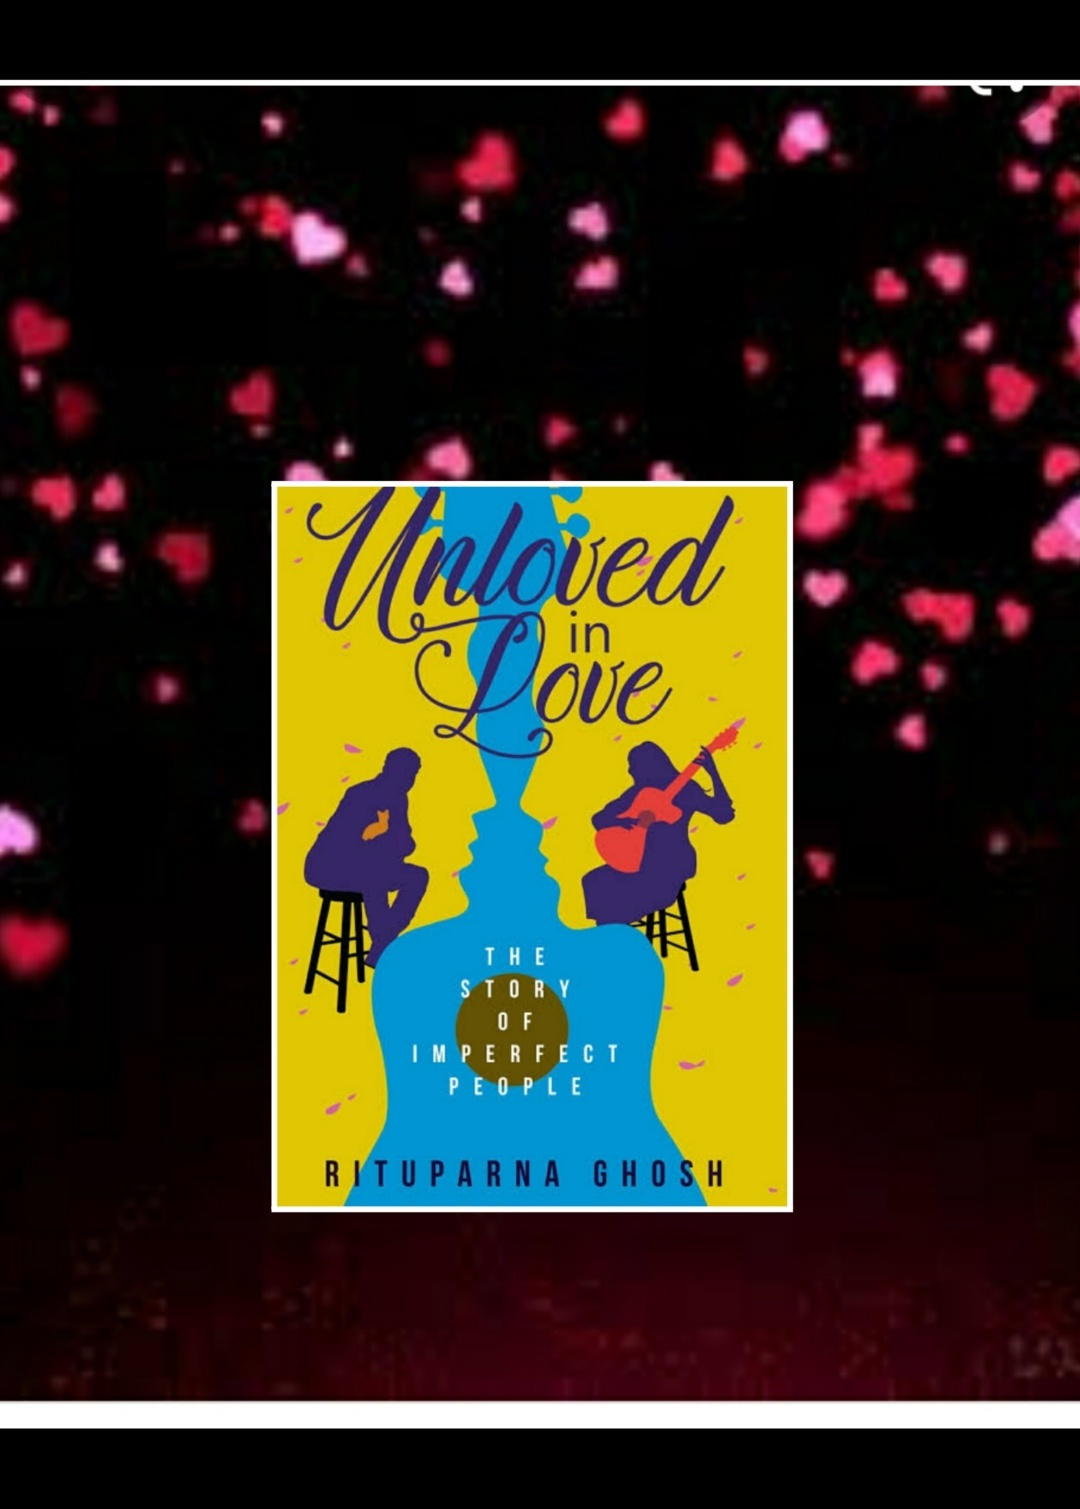 Book Review: Unloved in love